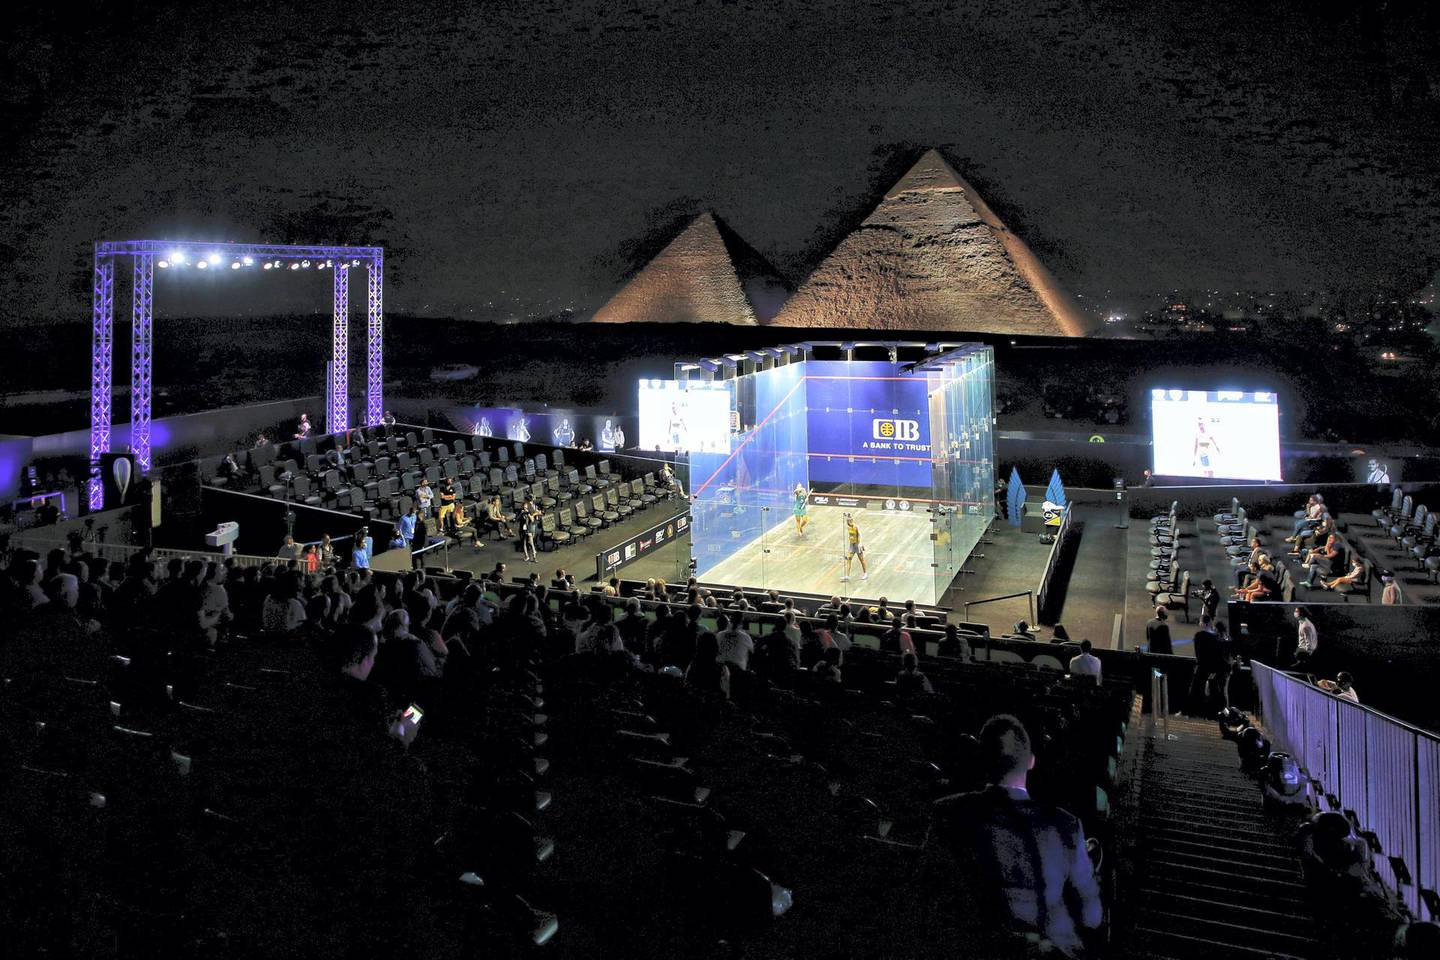 The Egypt International Squash Championship held in the pyramids area in Giza, Egypt, on 14 October 2020. (Photo by Ziad Ahmed/NurPhoto via Getty Images)